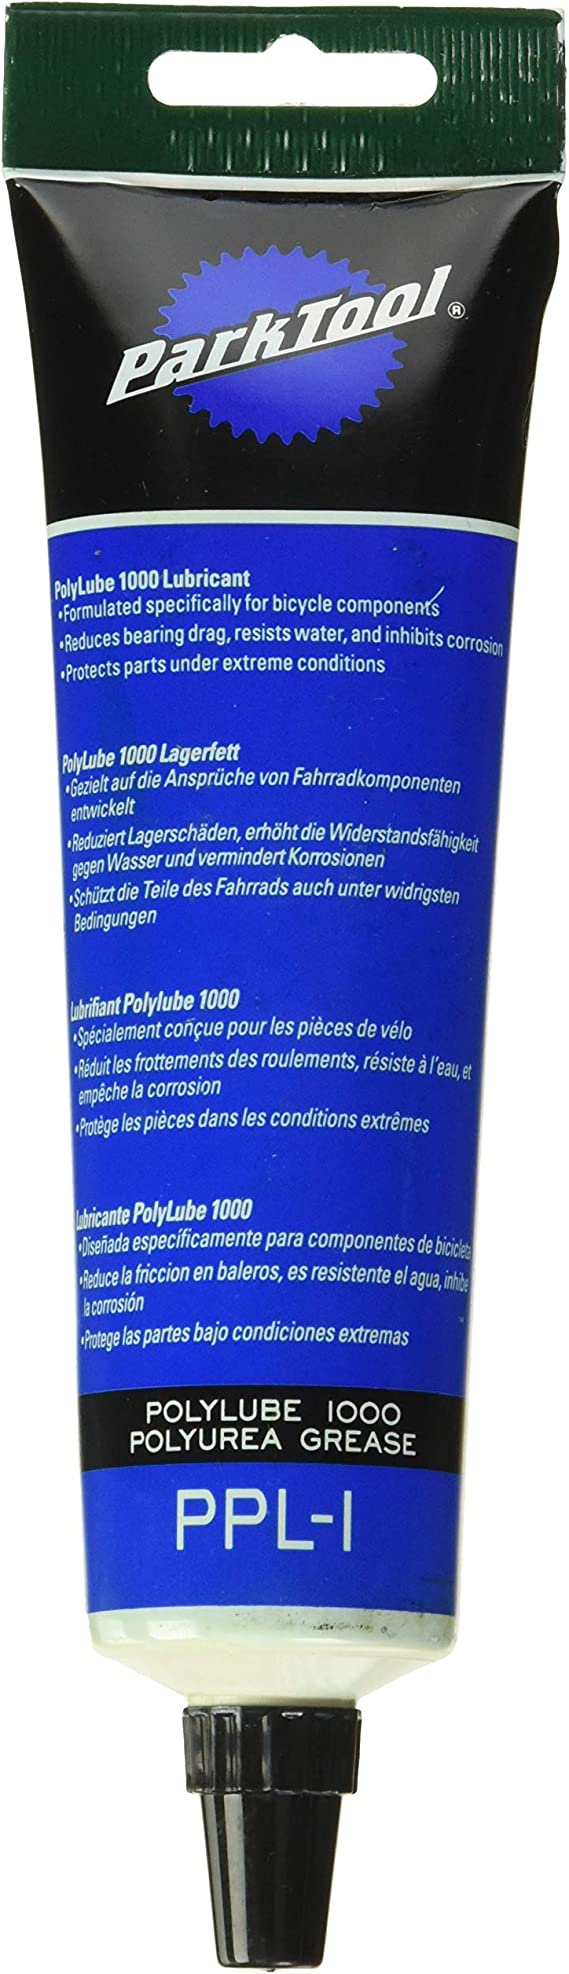 Park Tool PPL-1 PolyLube 1000 Lubricant